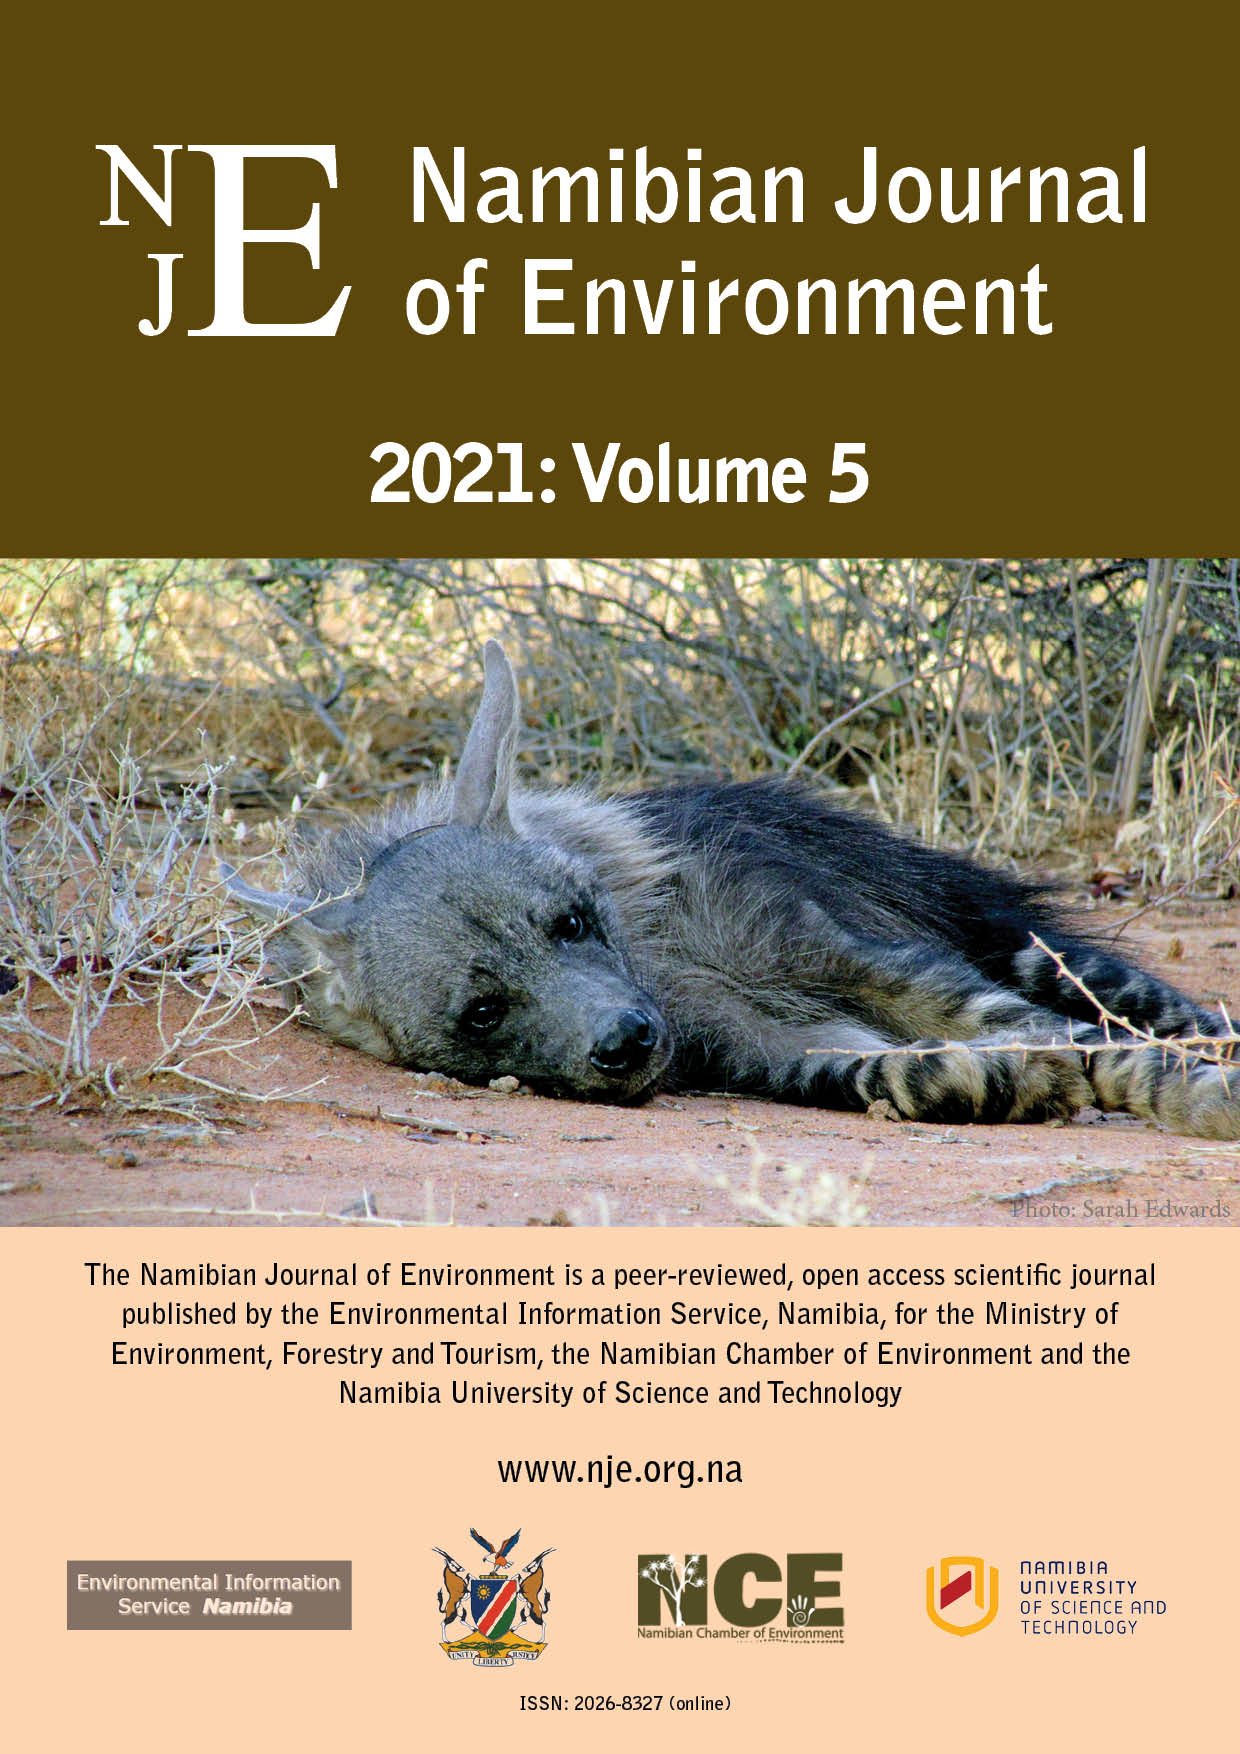 Cover of Namibian Journal of Environment 2021 Volume 5